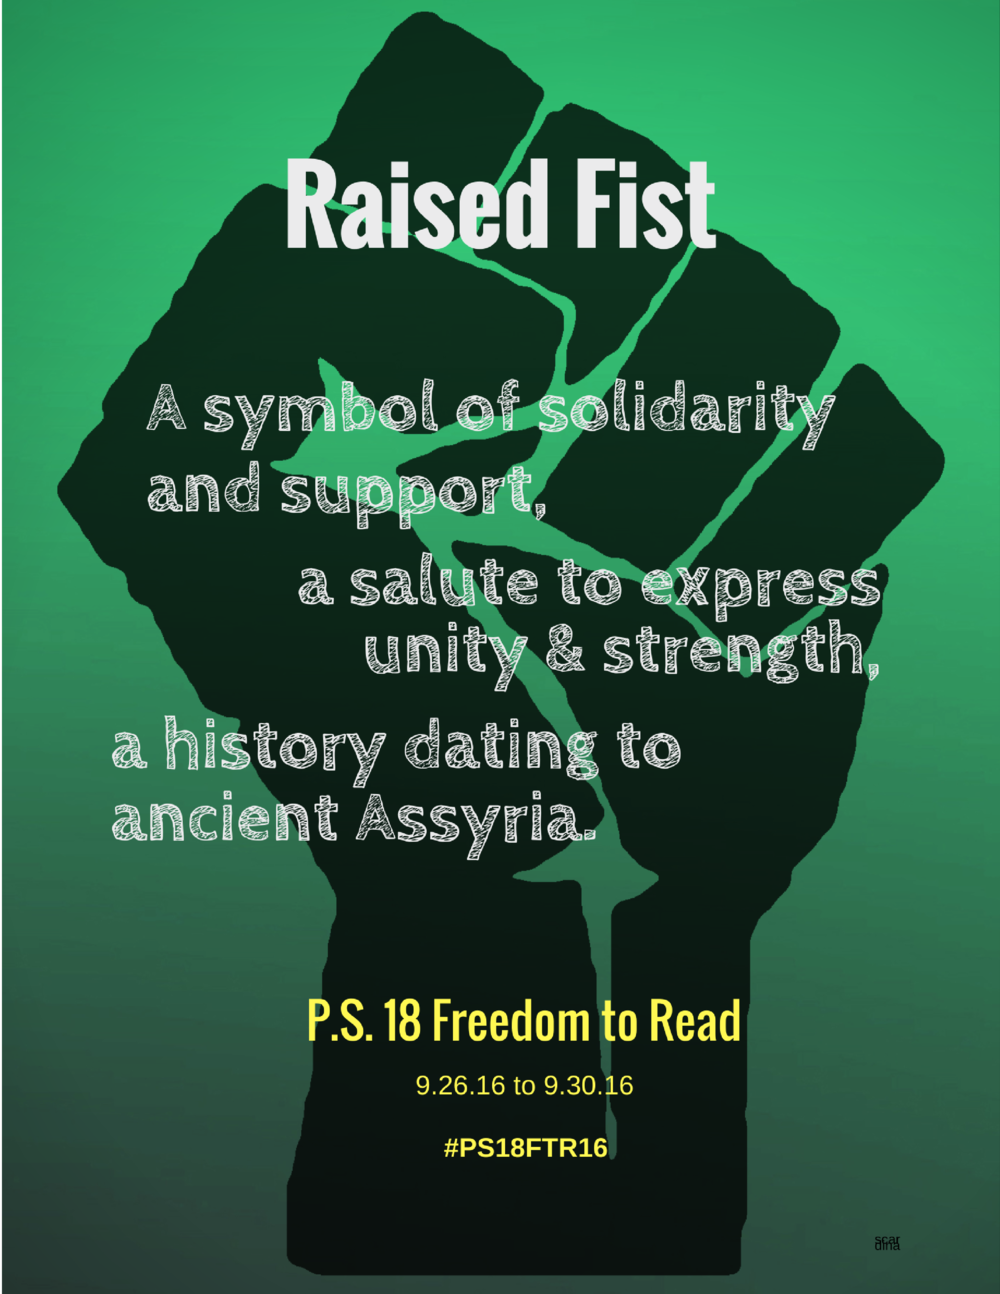 Awareness Poster - I created a large-scale Raised Fist poster (by hand) for the library.  I created this poster in Canva using a scanned image of the artwork I drew.  This poster explains the meaning behind the raised fist.